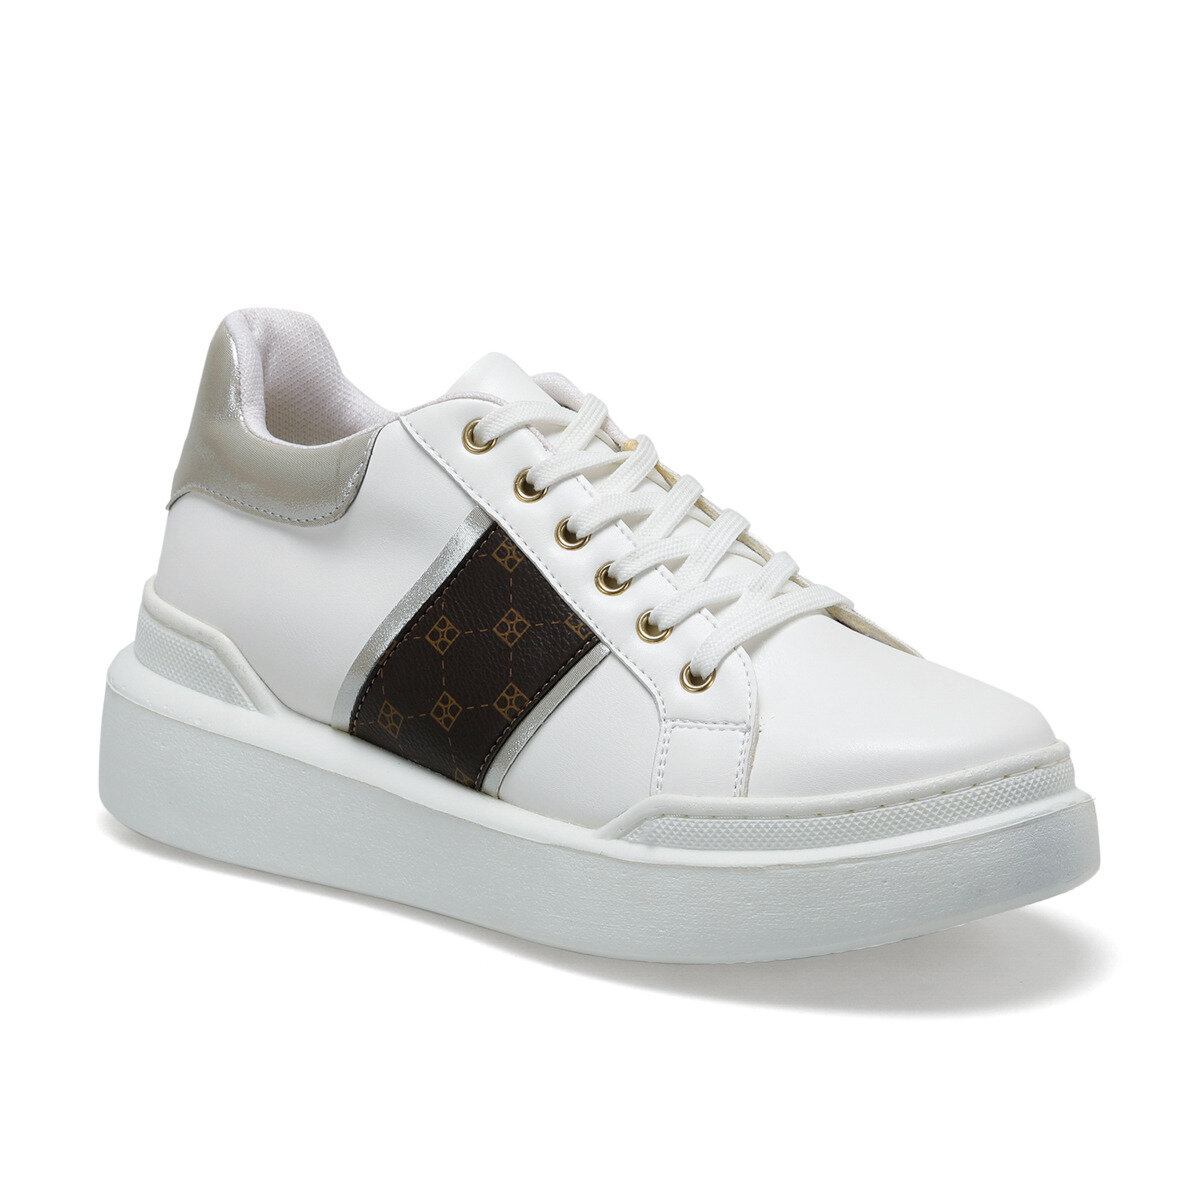 FLO 20S-311 White Women 'S Sneaker Shoes BUTIGO